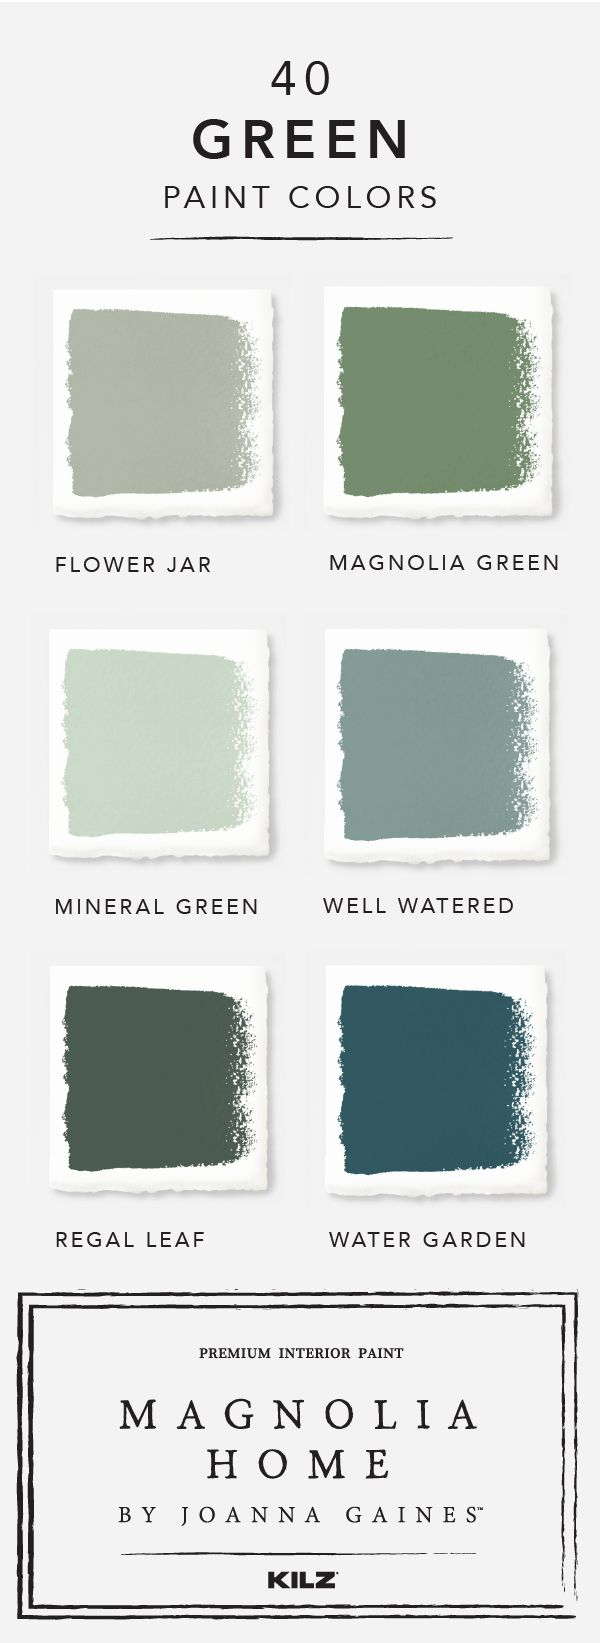 Your friends and family will be green with envy when they see this green color palette from the Magnolia Home by Joanna Gaines™ paint collection in your home. Choose from colors like Flower Jar, Well Watered, and Regal Leaf to create an interior design that's all your own.